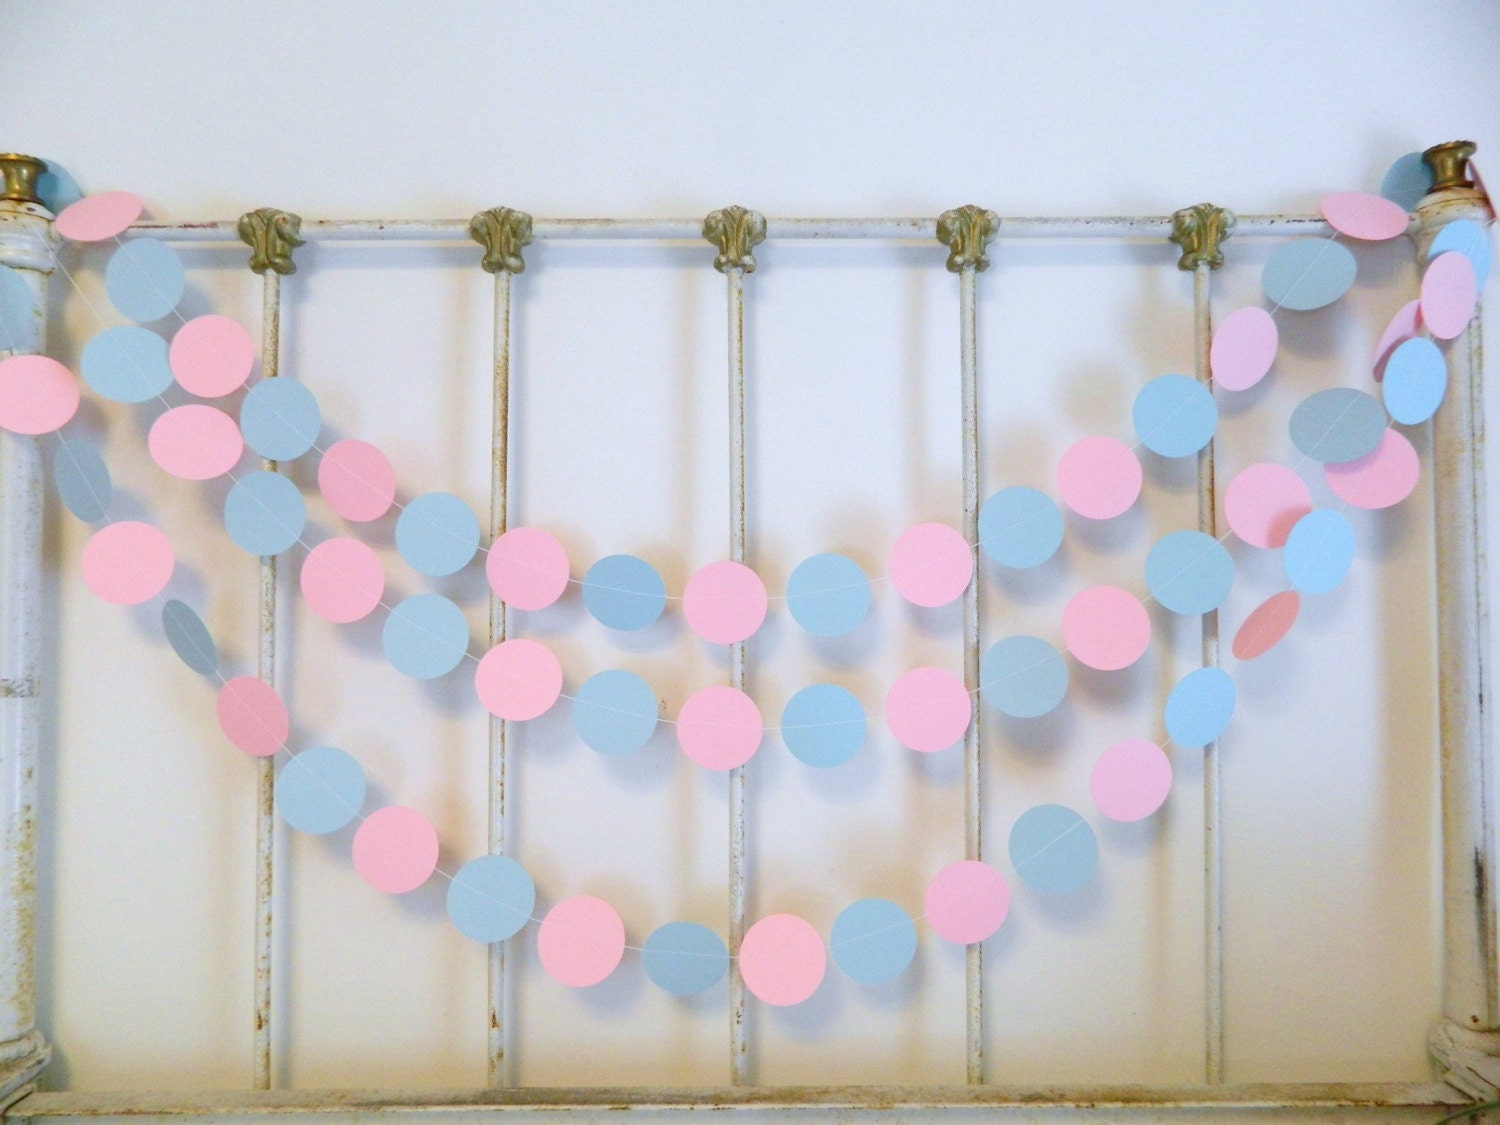 Gender Reveal Baby Shower Decorations 10 Foot Pink Or Blue We Love You Paper Garland Pink And Blue Baby Shower Decor Twins Decoration